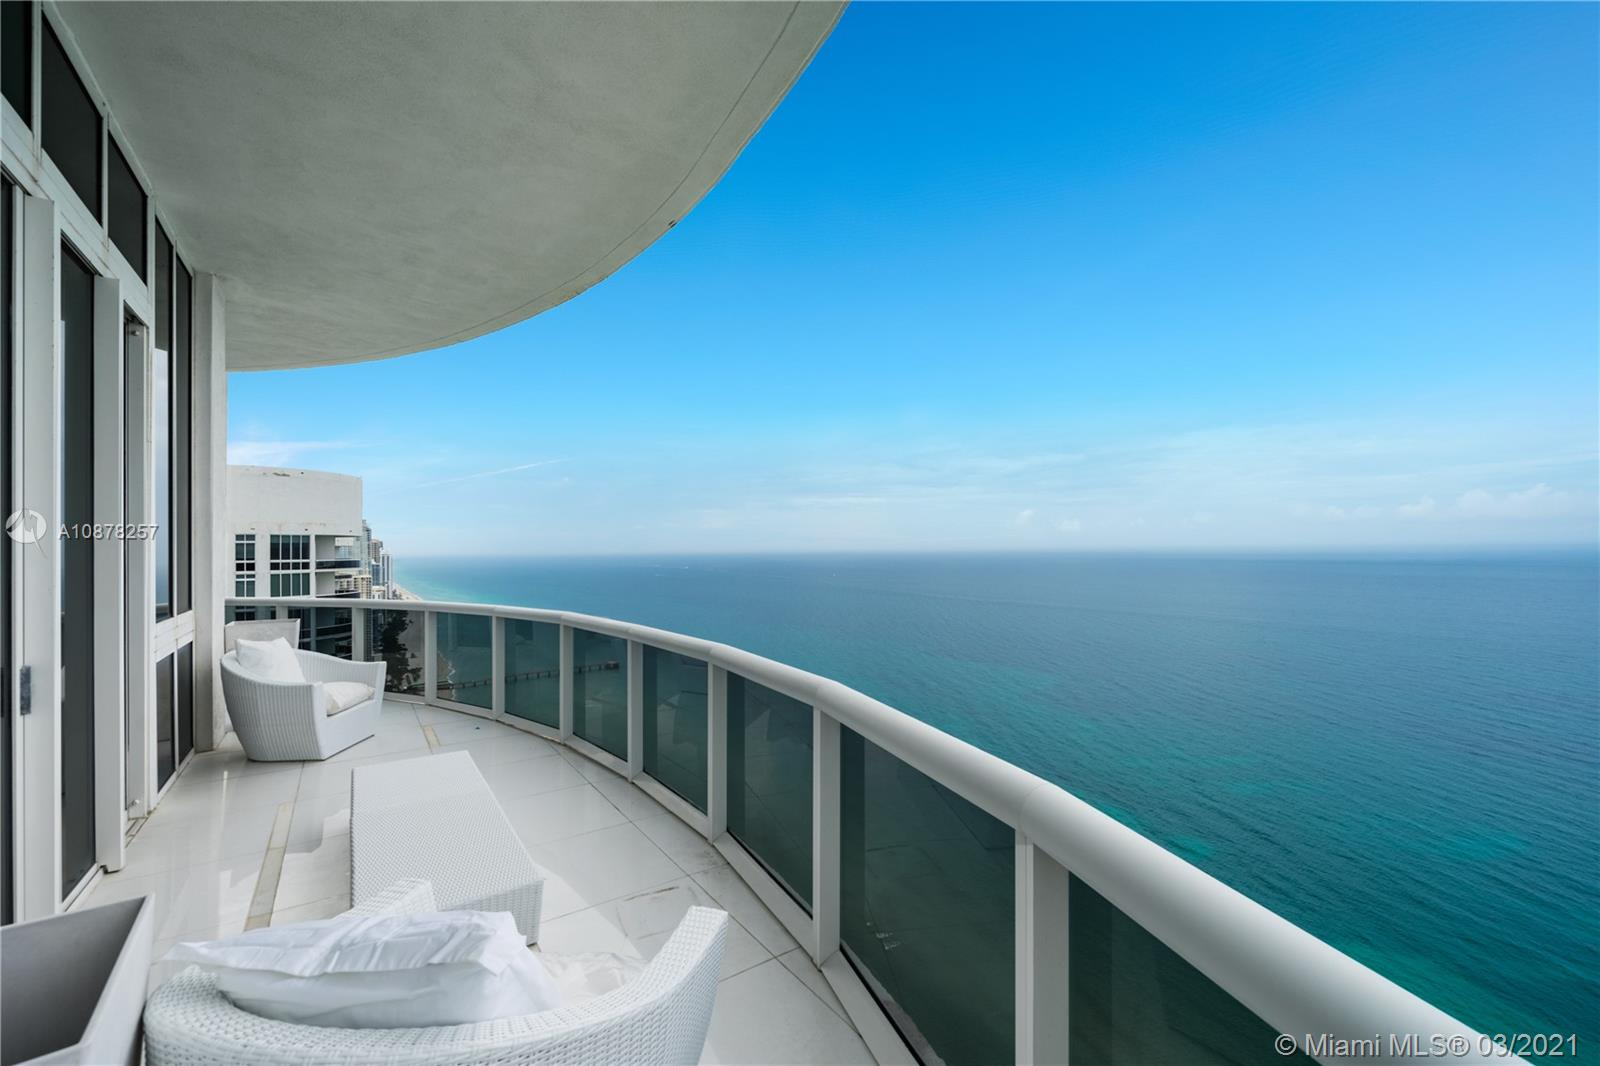 Listing Details for 15811 Collins Ave  Ph4301, Sunny Isles Beach, FL 33160